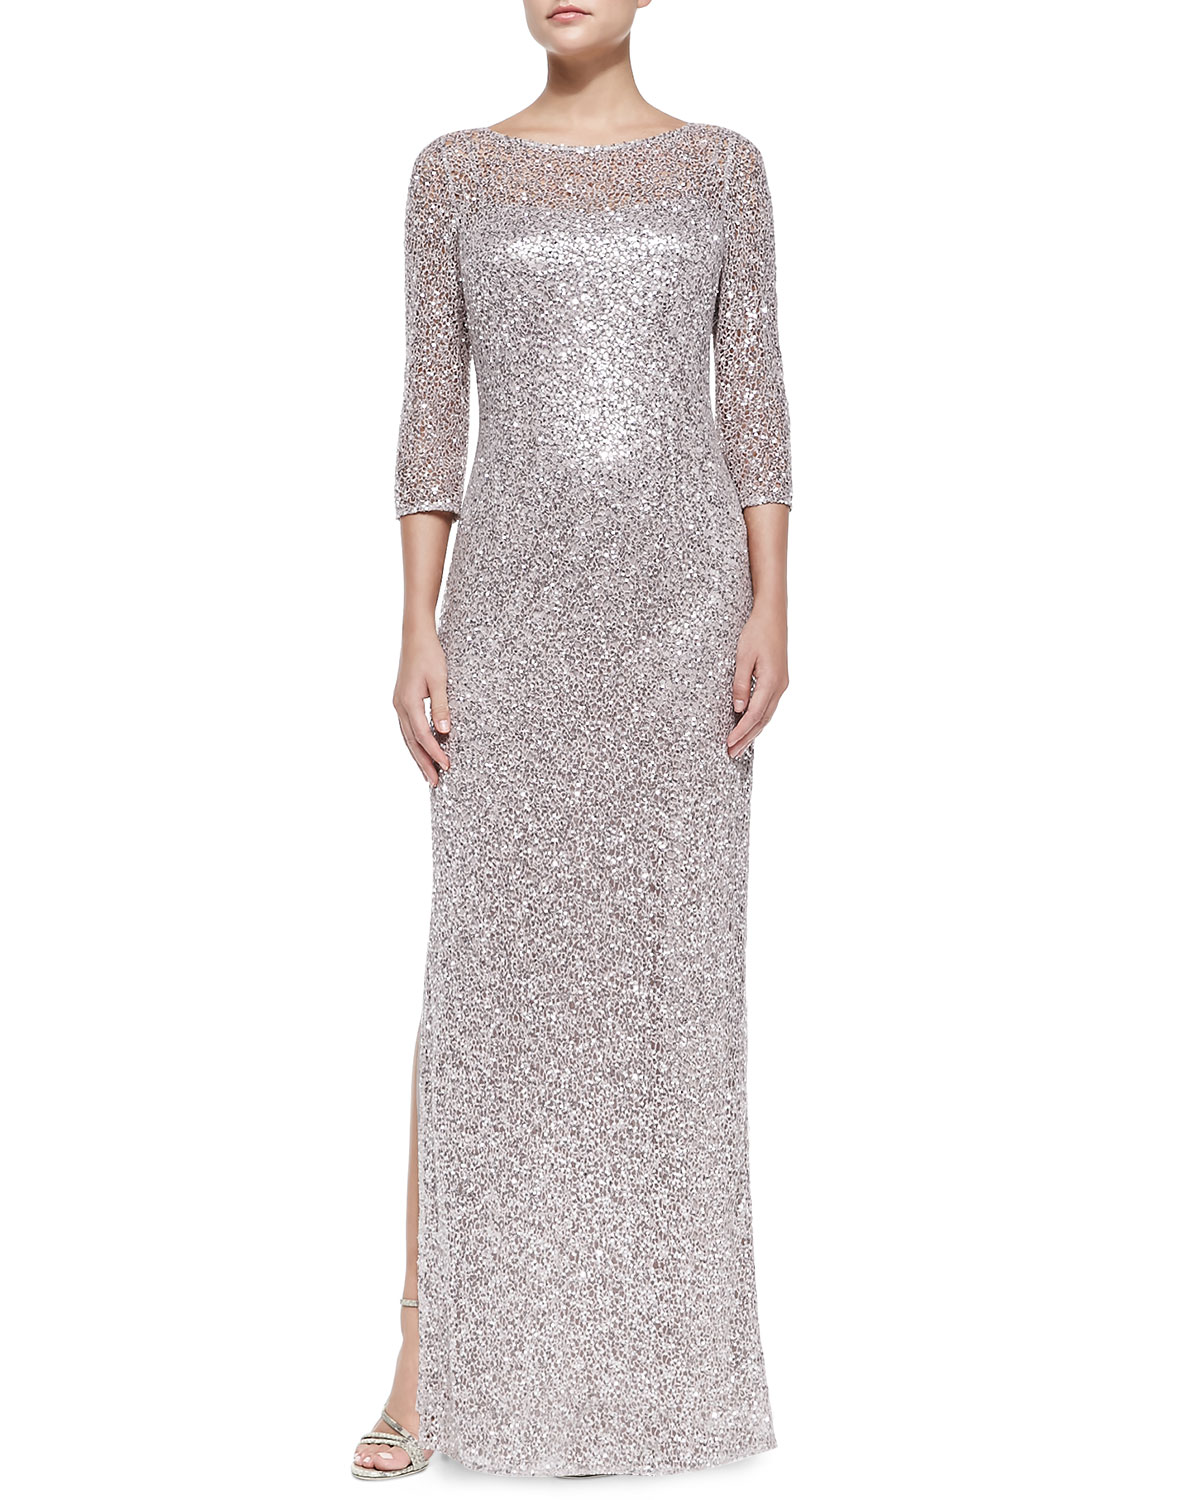 10defa71895 Kay Unger New York Sequined Lace Overlay Gown